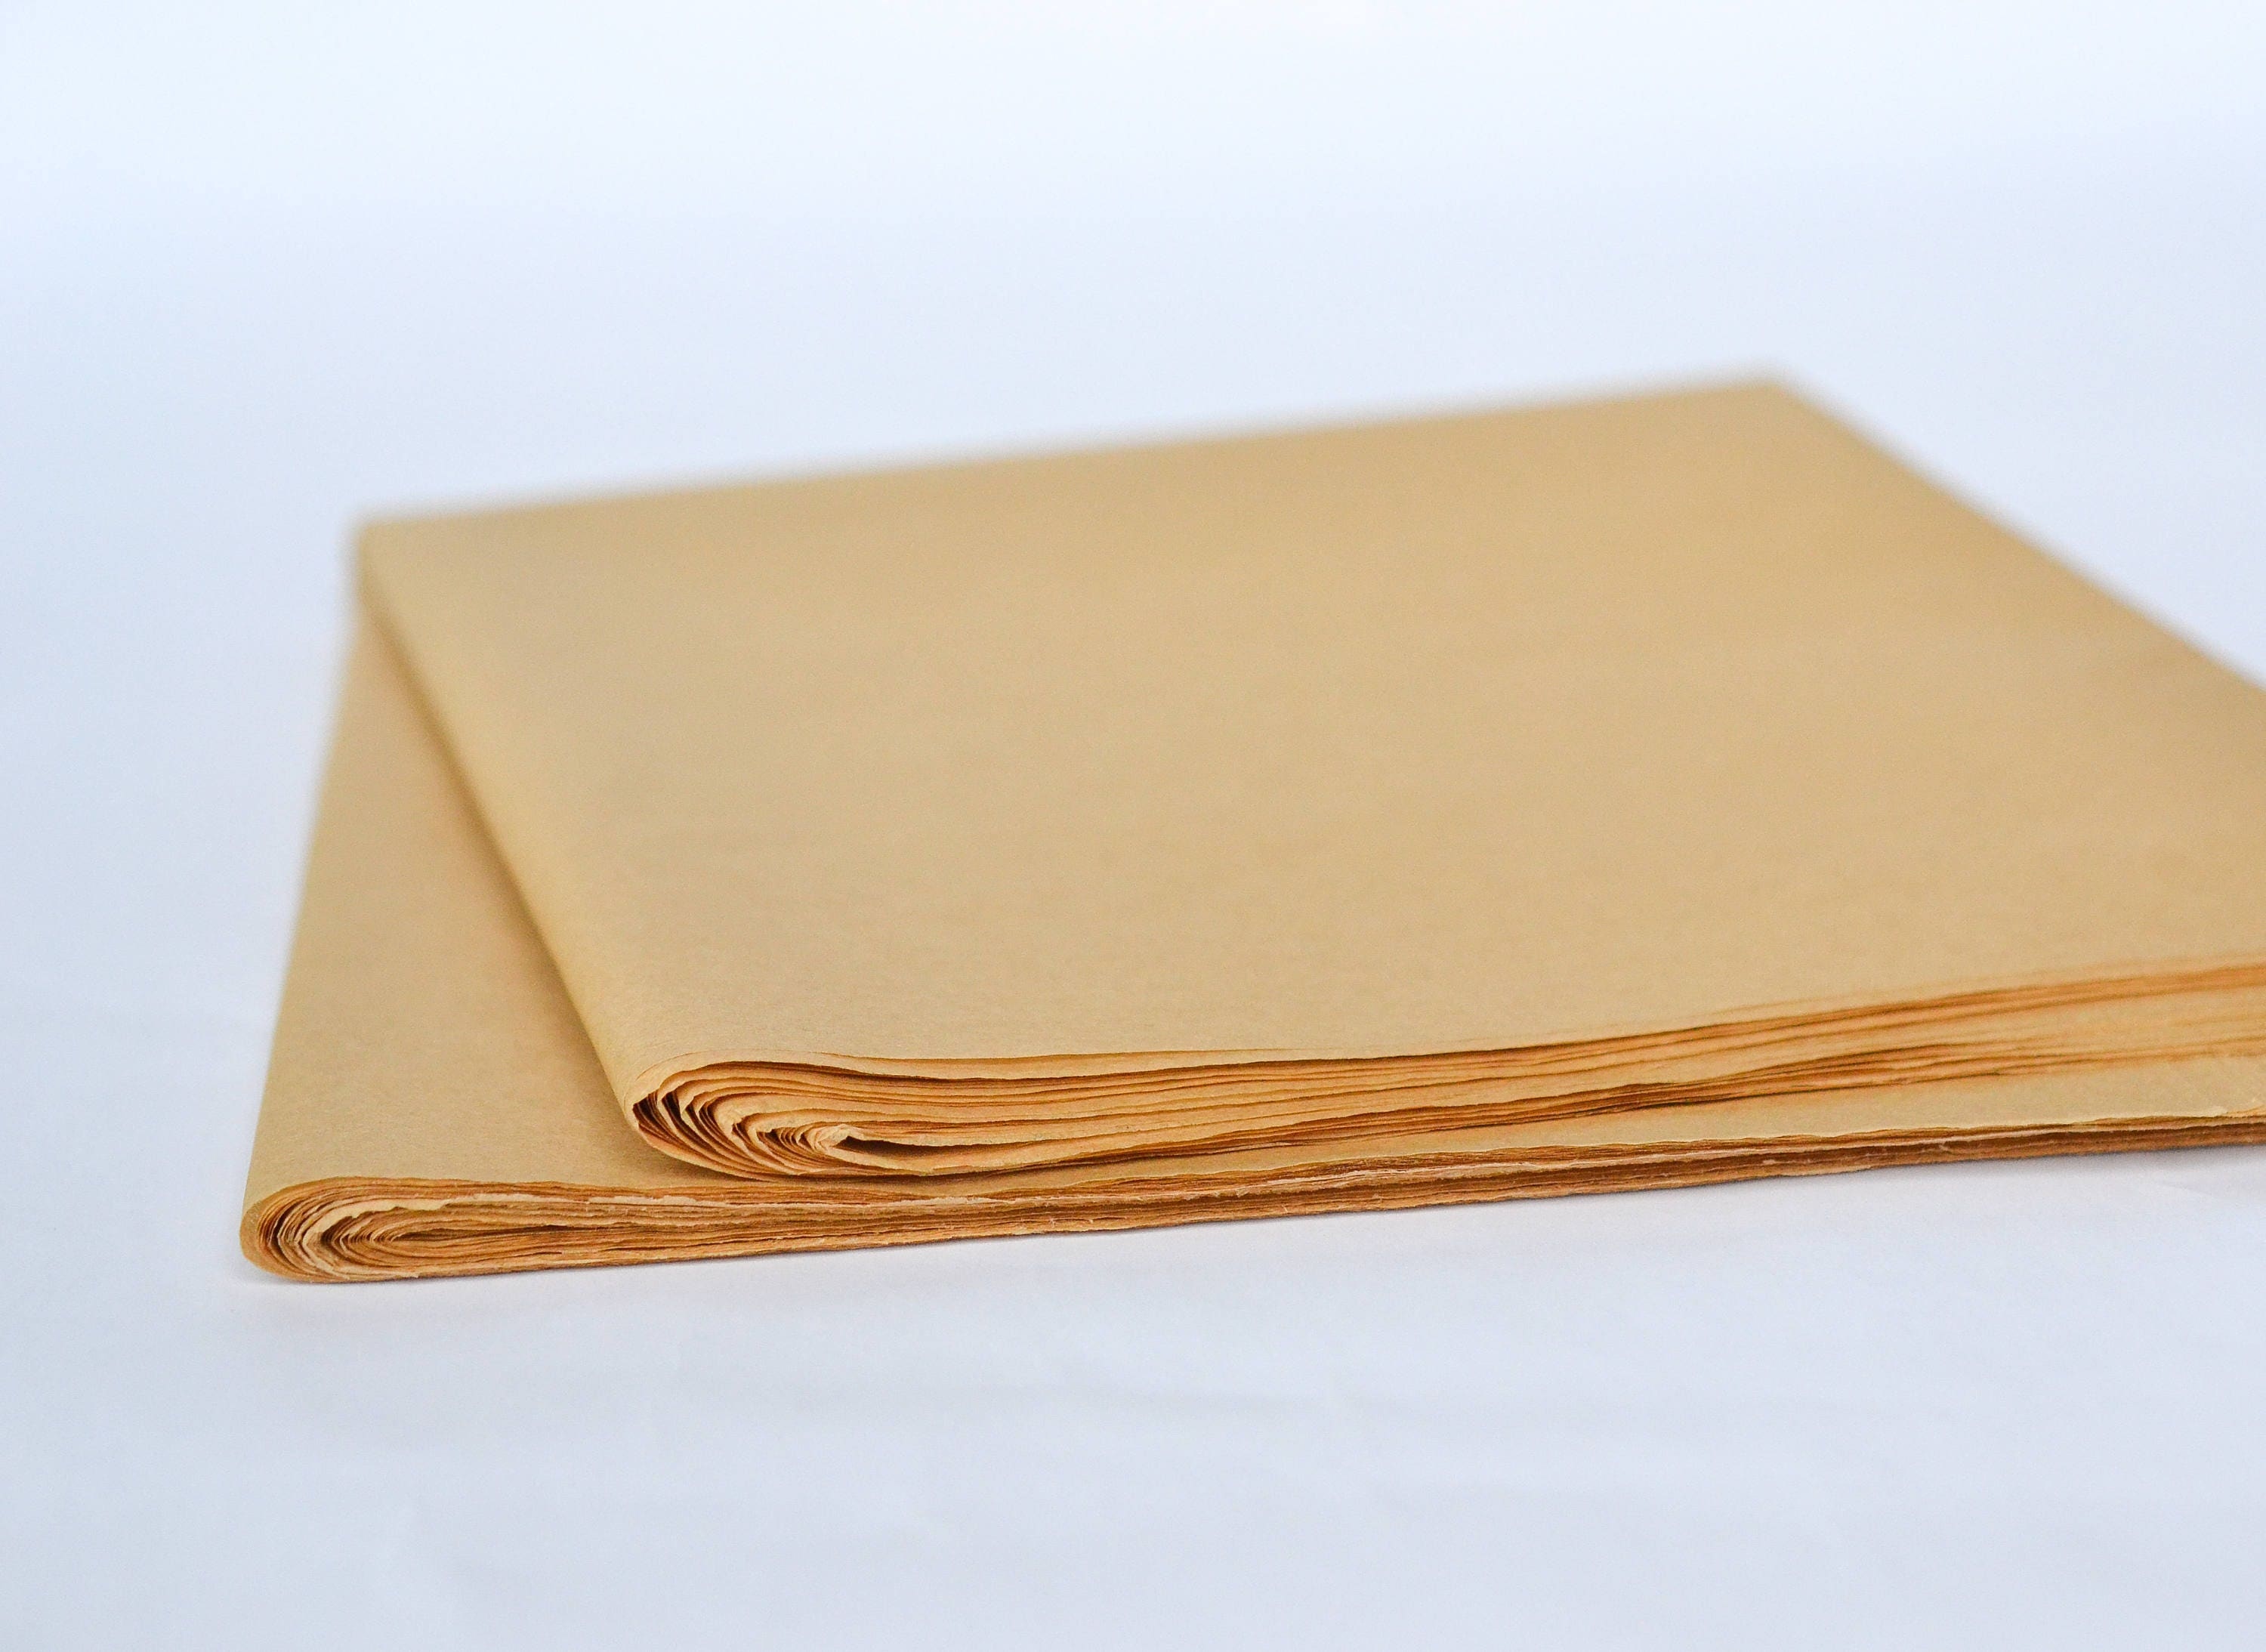 kraft paper sheets Kapstone paper & packaging corporation is the largest us producer of kraft paper our paper is made from virgin wood pulp fiber, recycled fiber or a combination of the two.